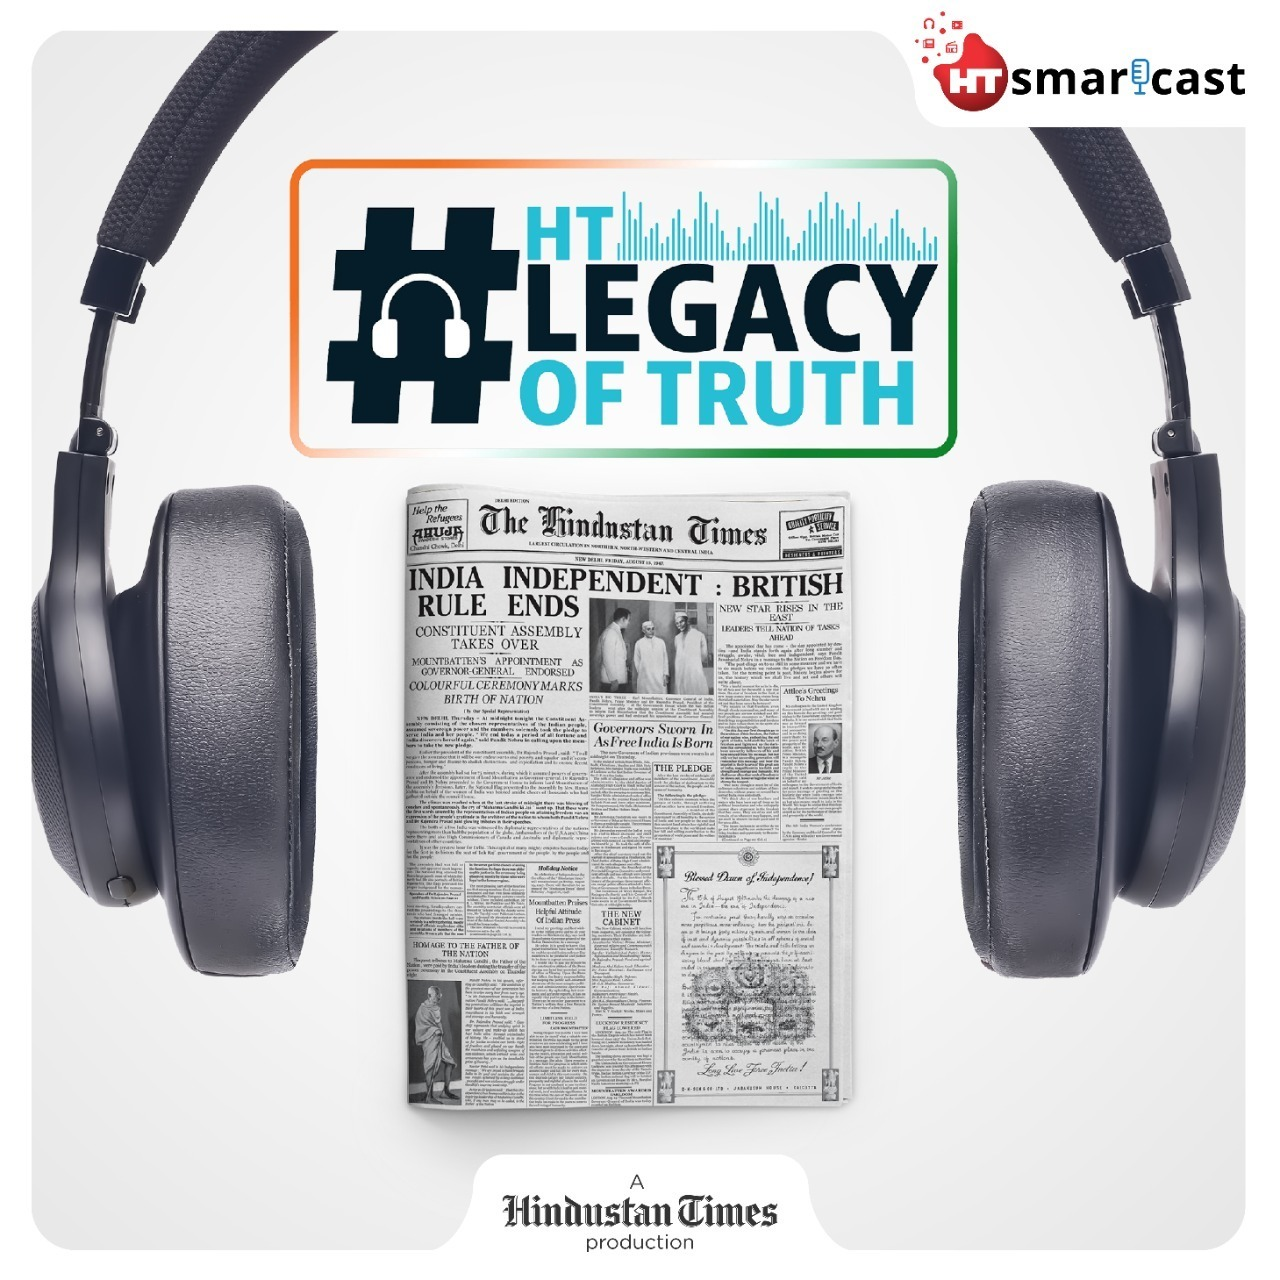 HT Legacy of Truth